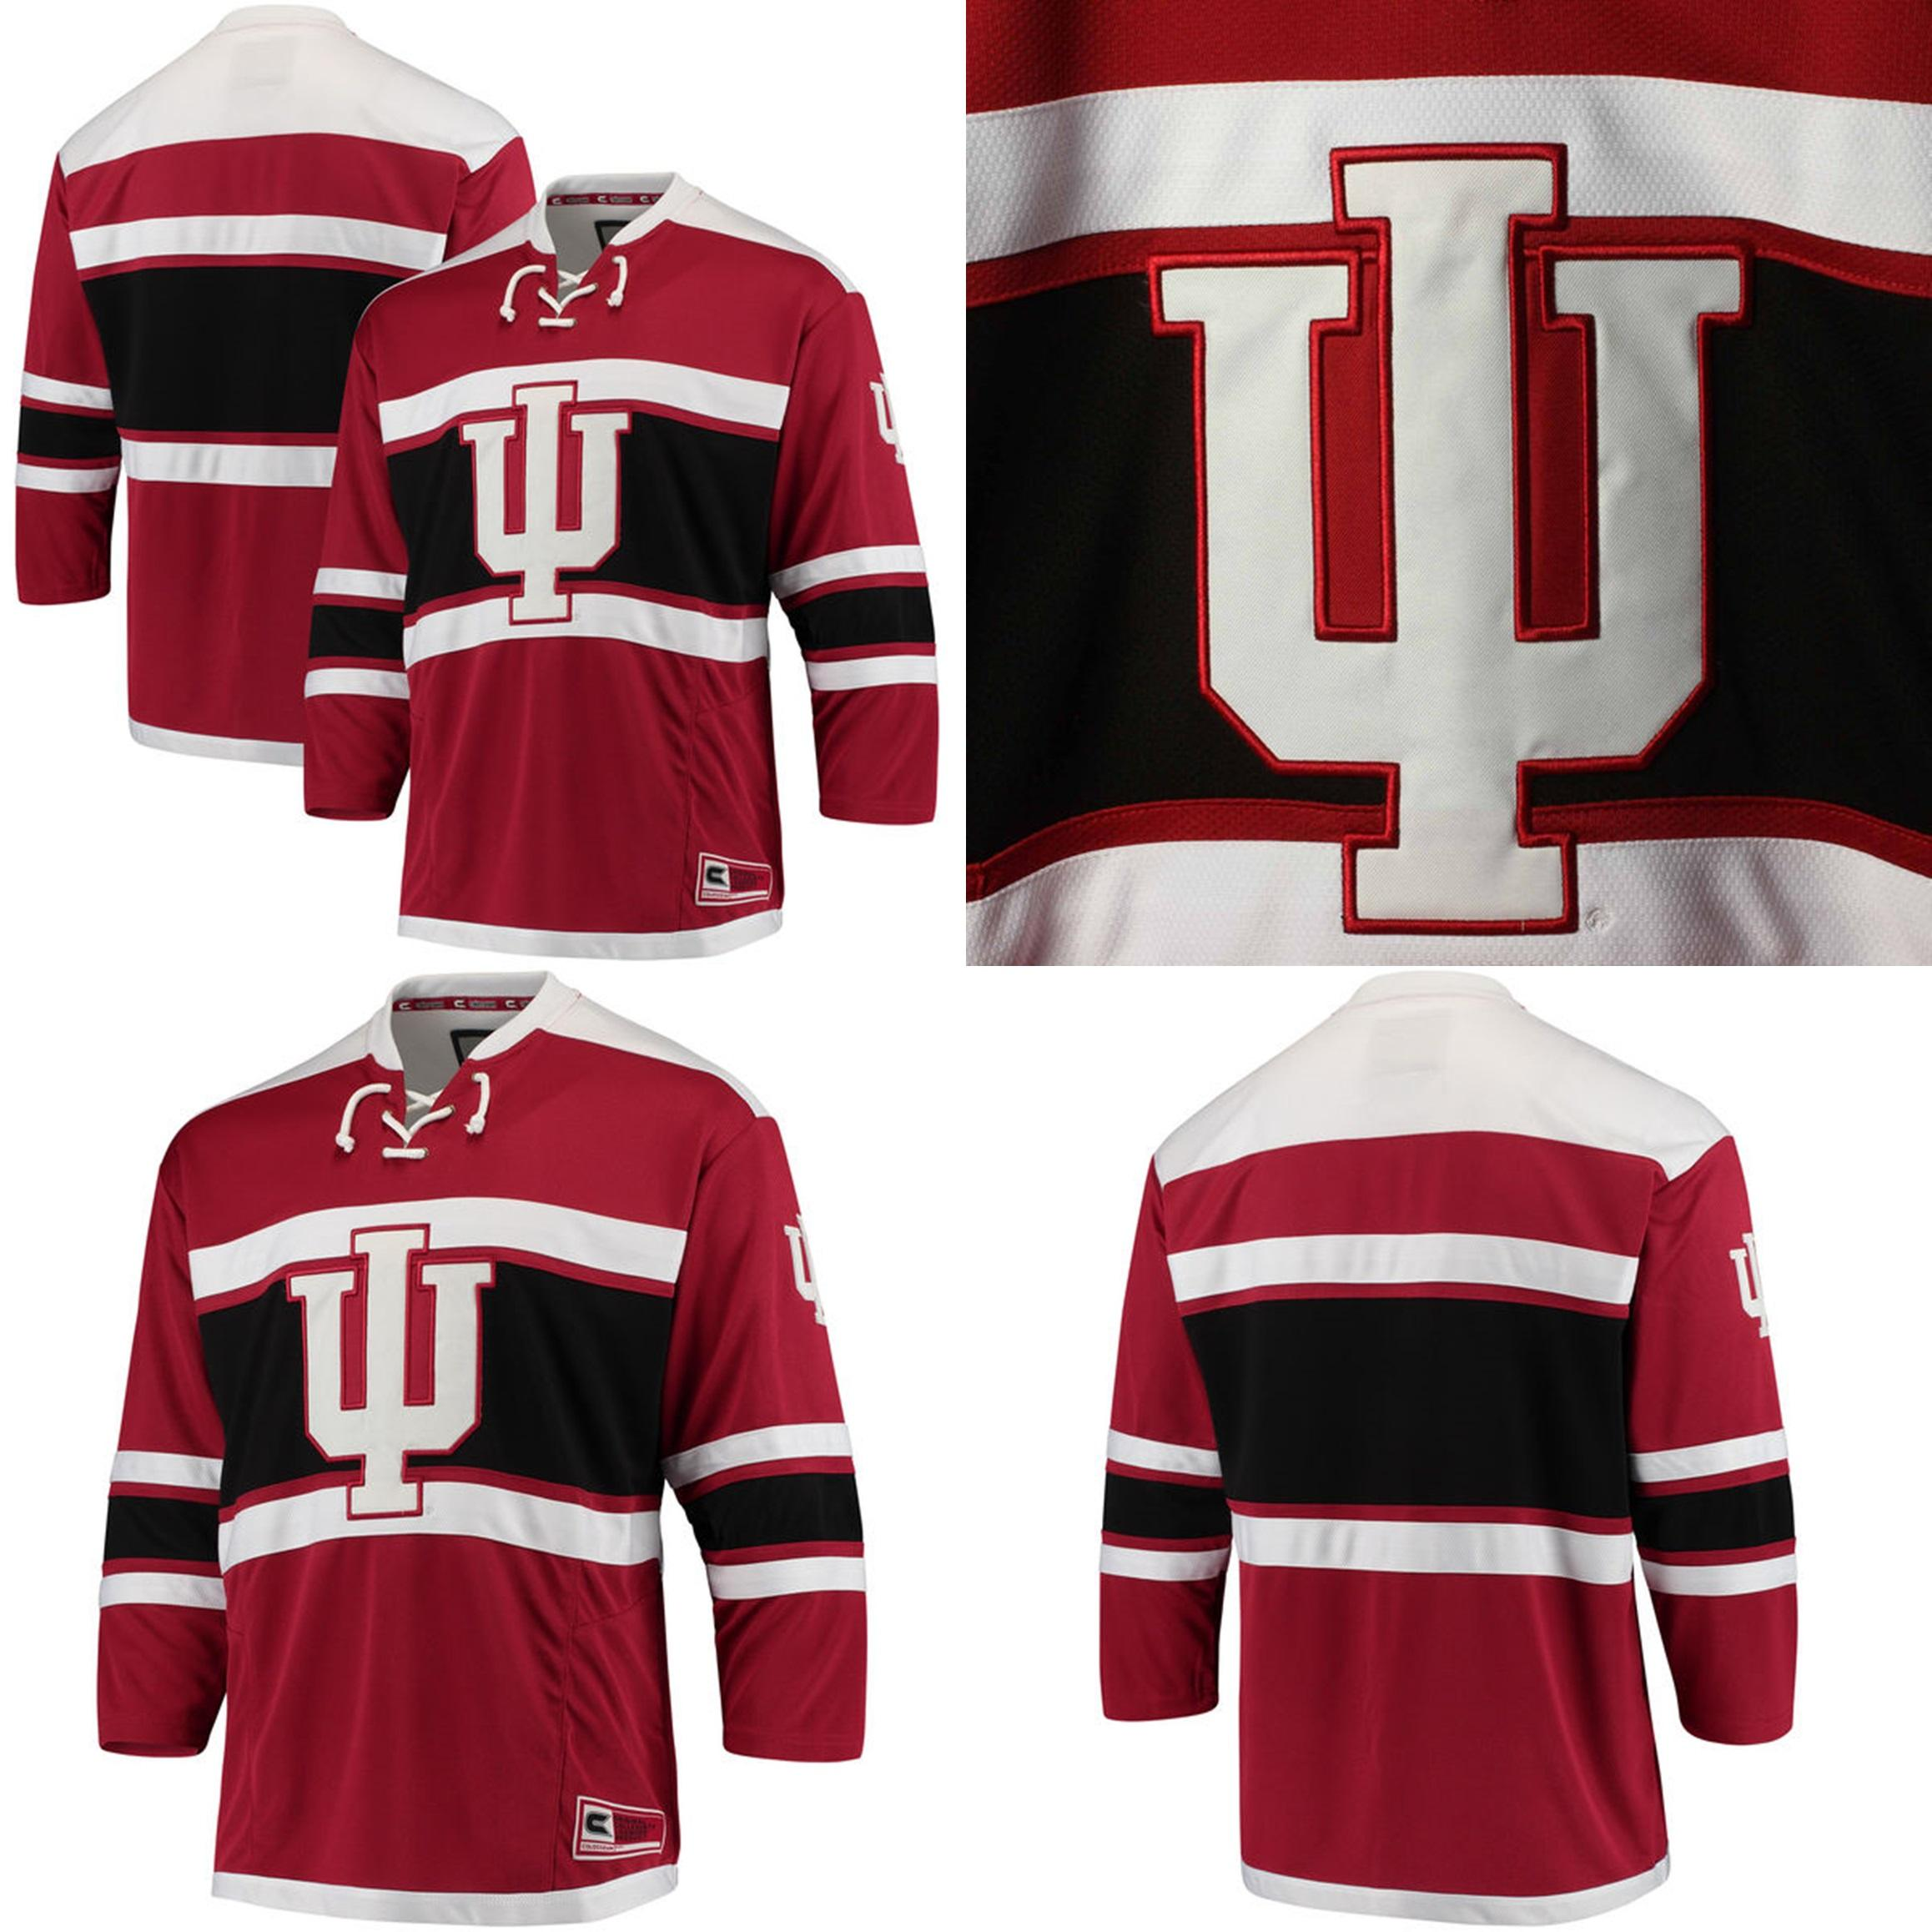 2019 Customize NCAA Indiana Hoosiers College Jersey Mens Womens Kids Custom  Any Name Any NO.Best Quality Ice Hockey Cheap Jerseys S 6XL From  Espn sport 4e2380802